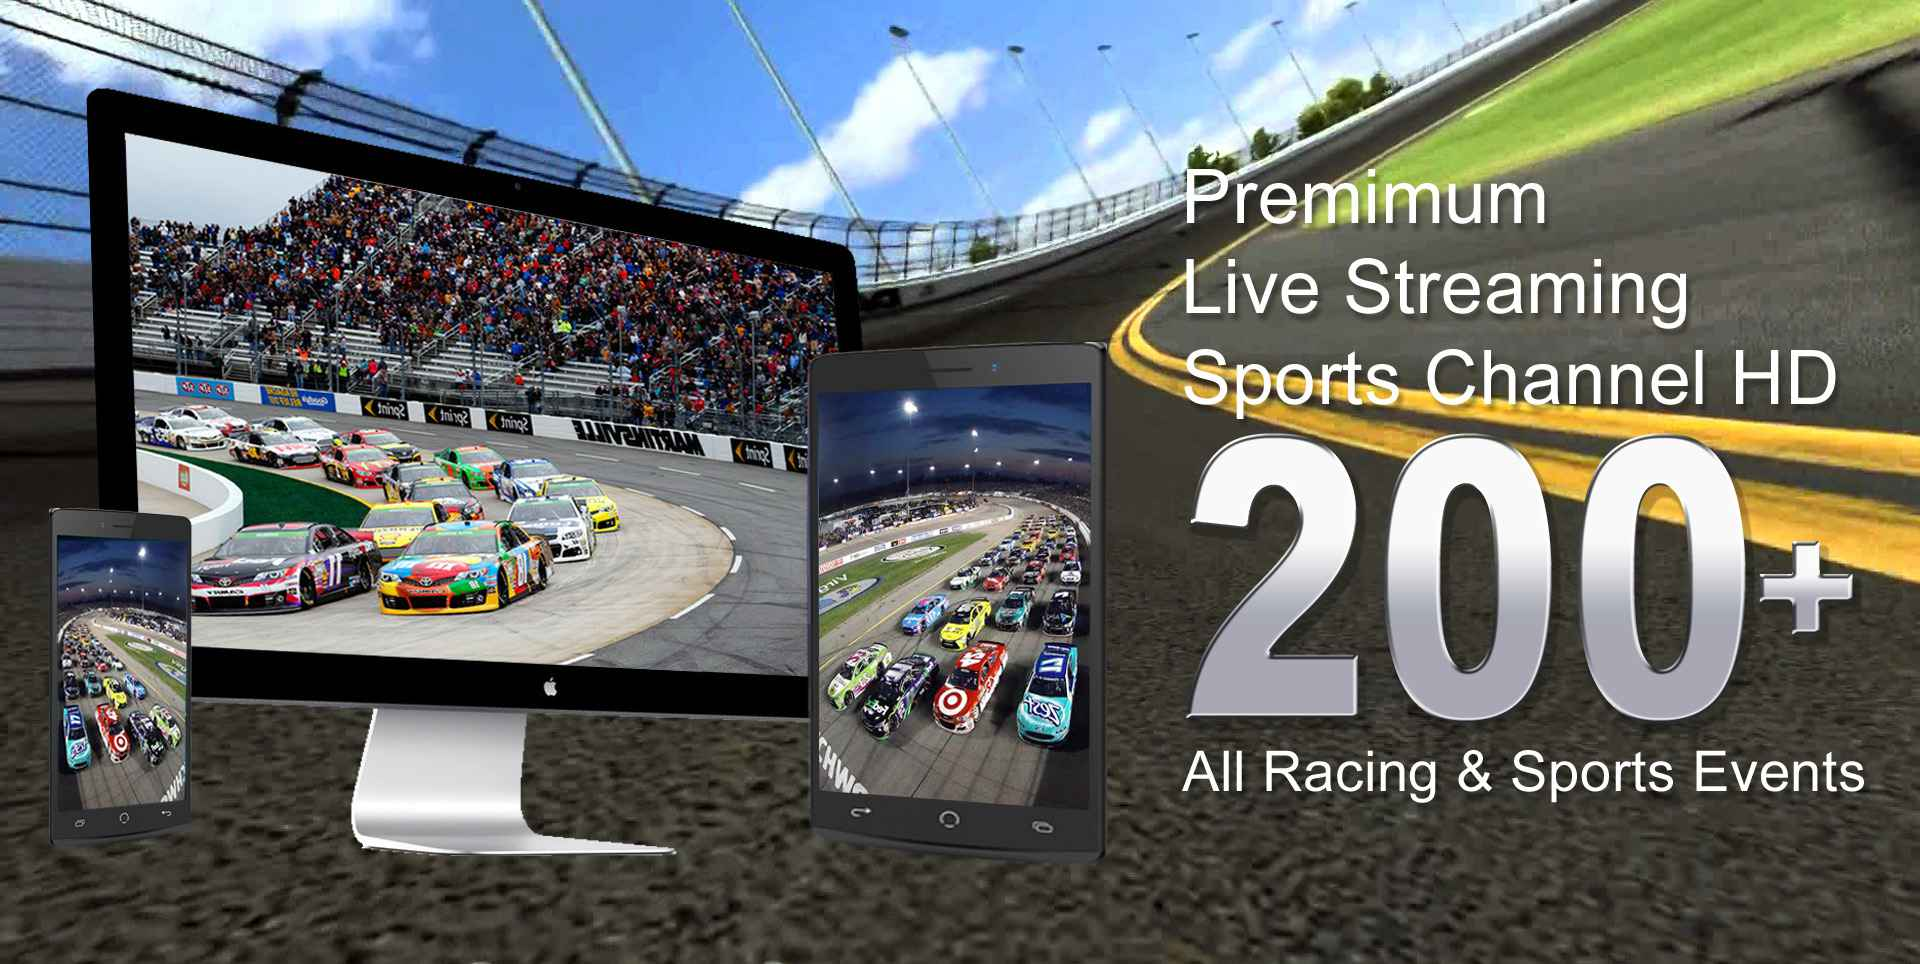 2015-chevrolet-sports-car-classic-live-streaming